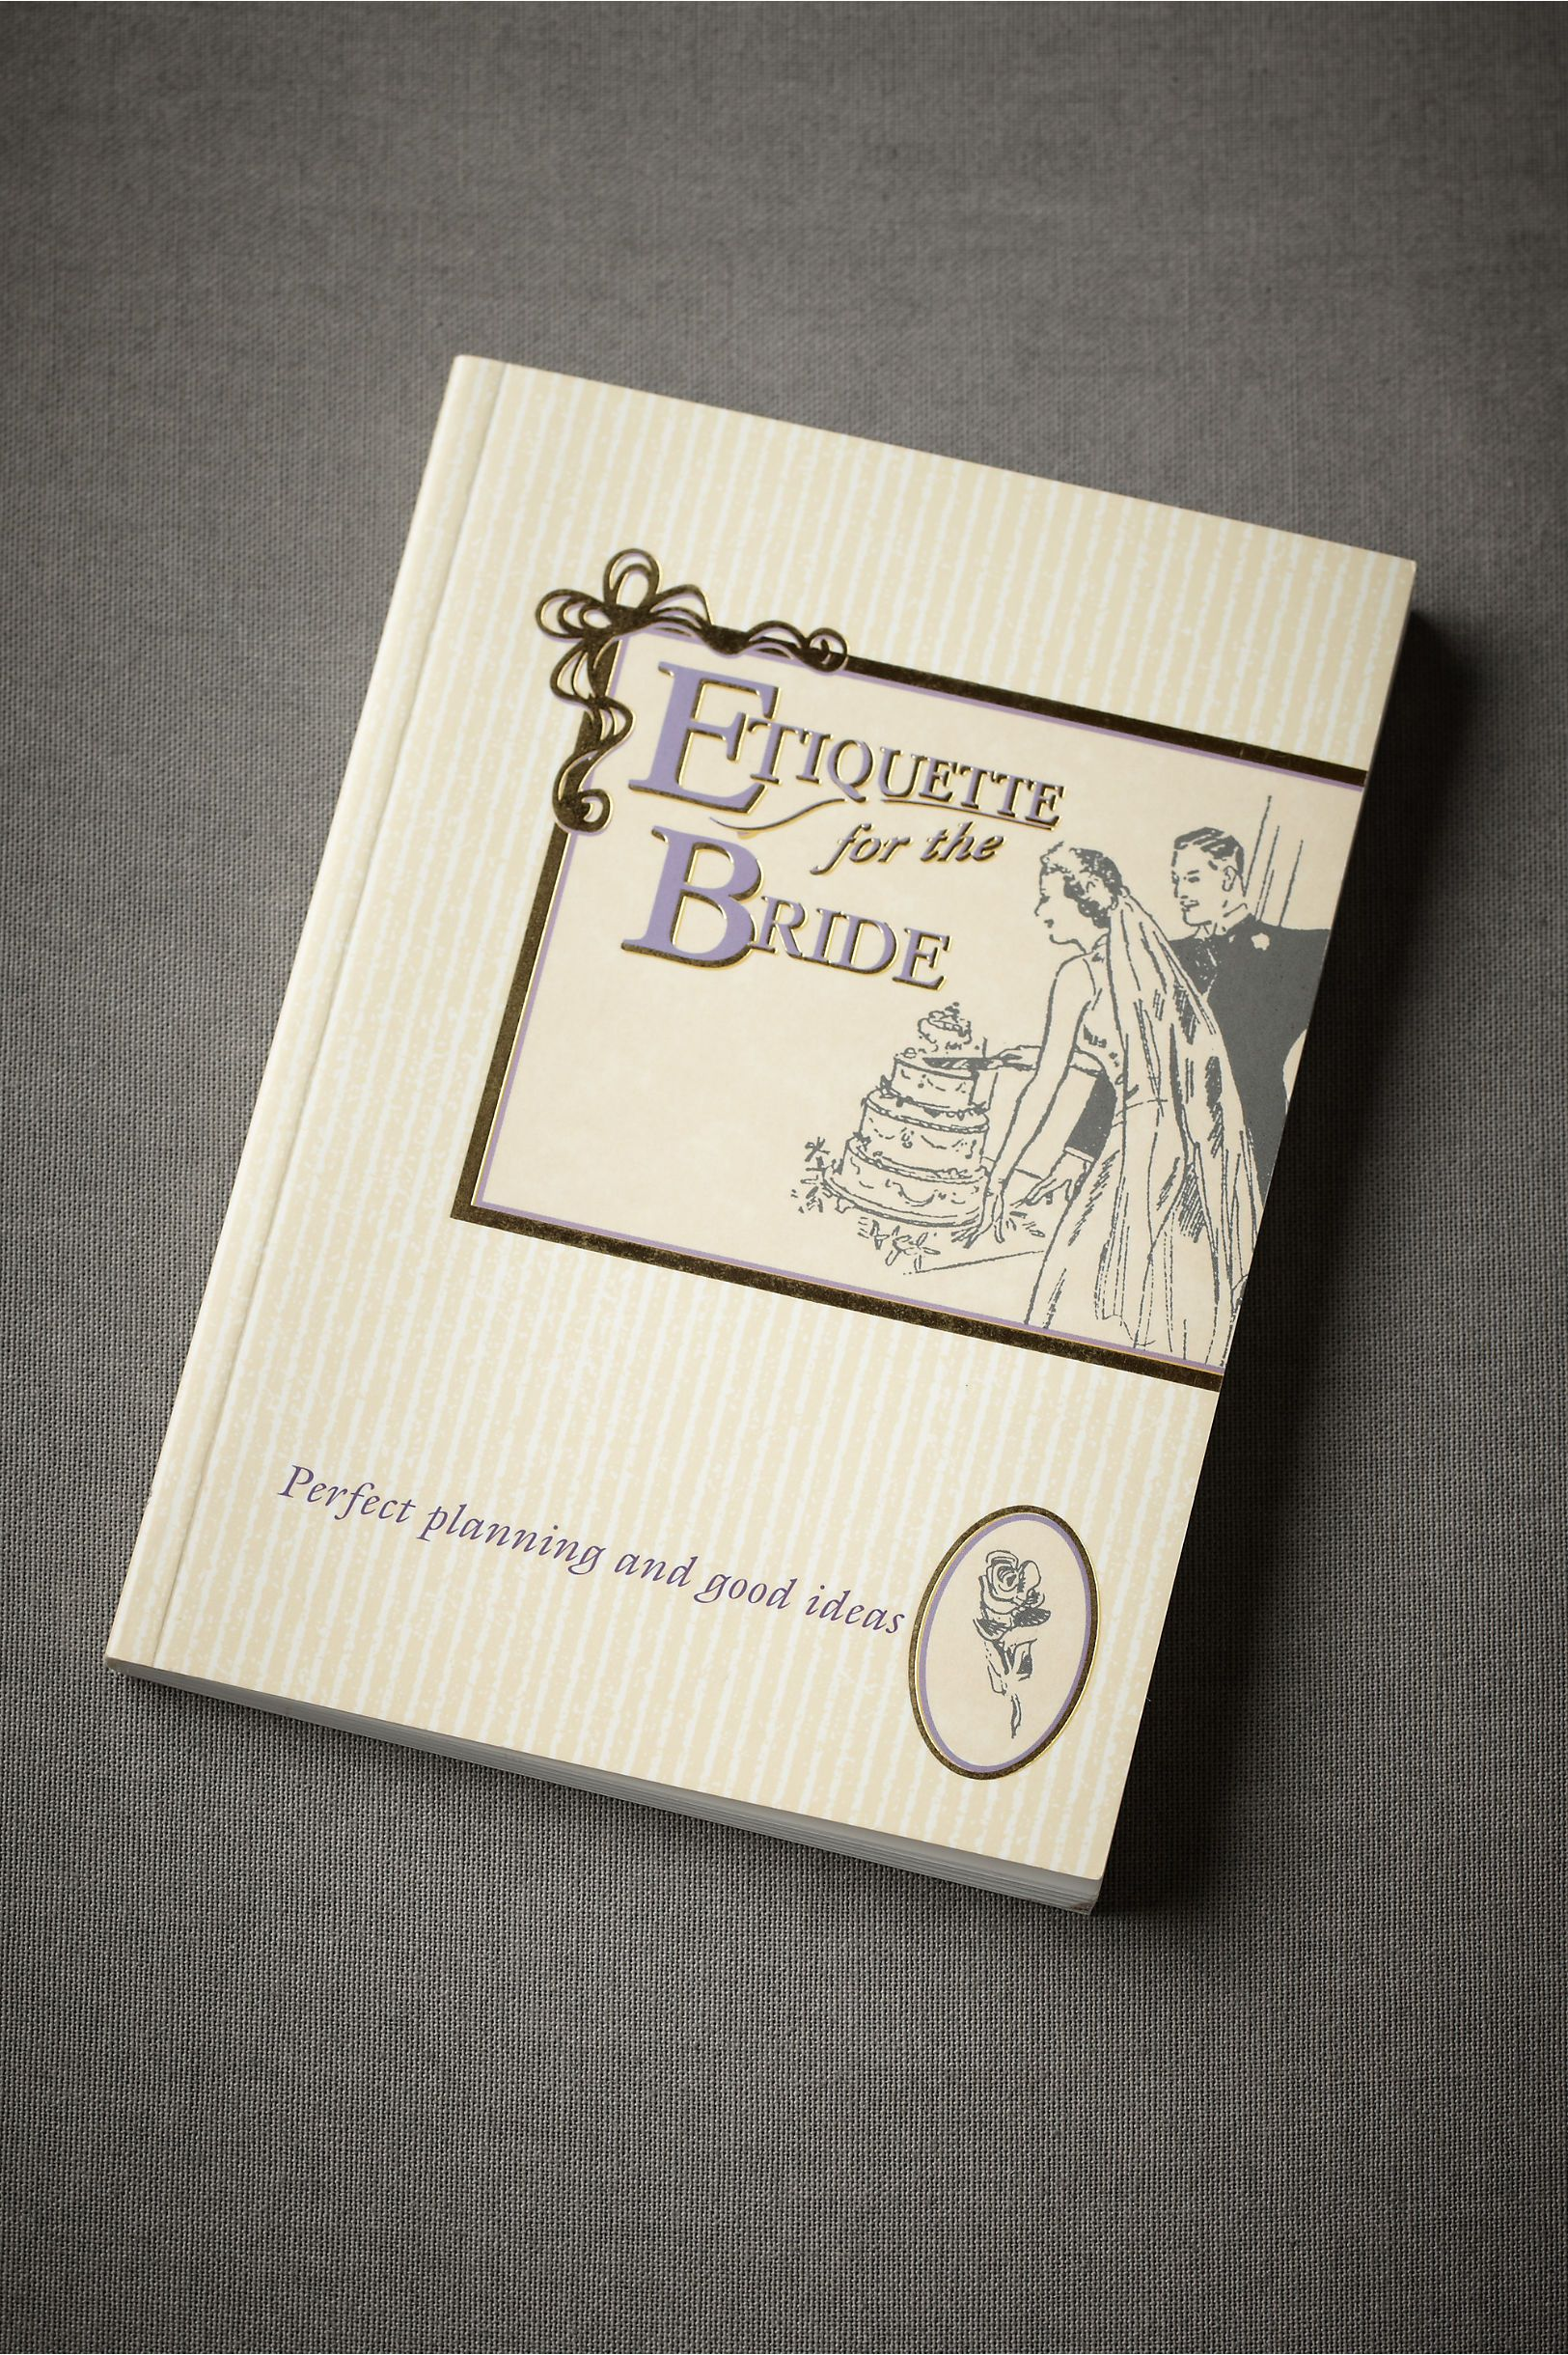 Etiquette For the Bride Vintage wedding gifts, Wedding